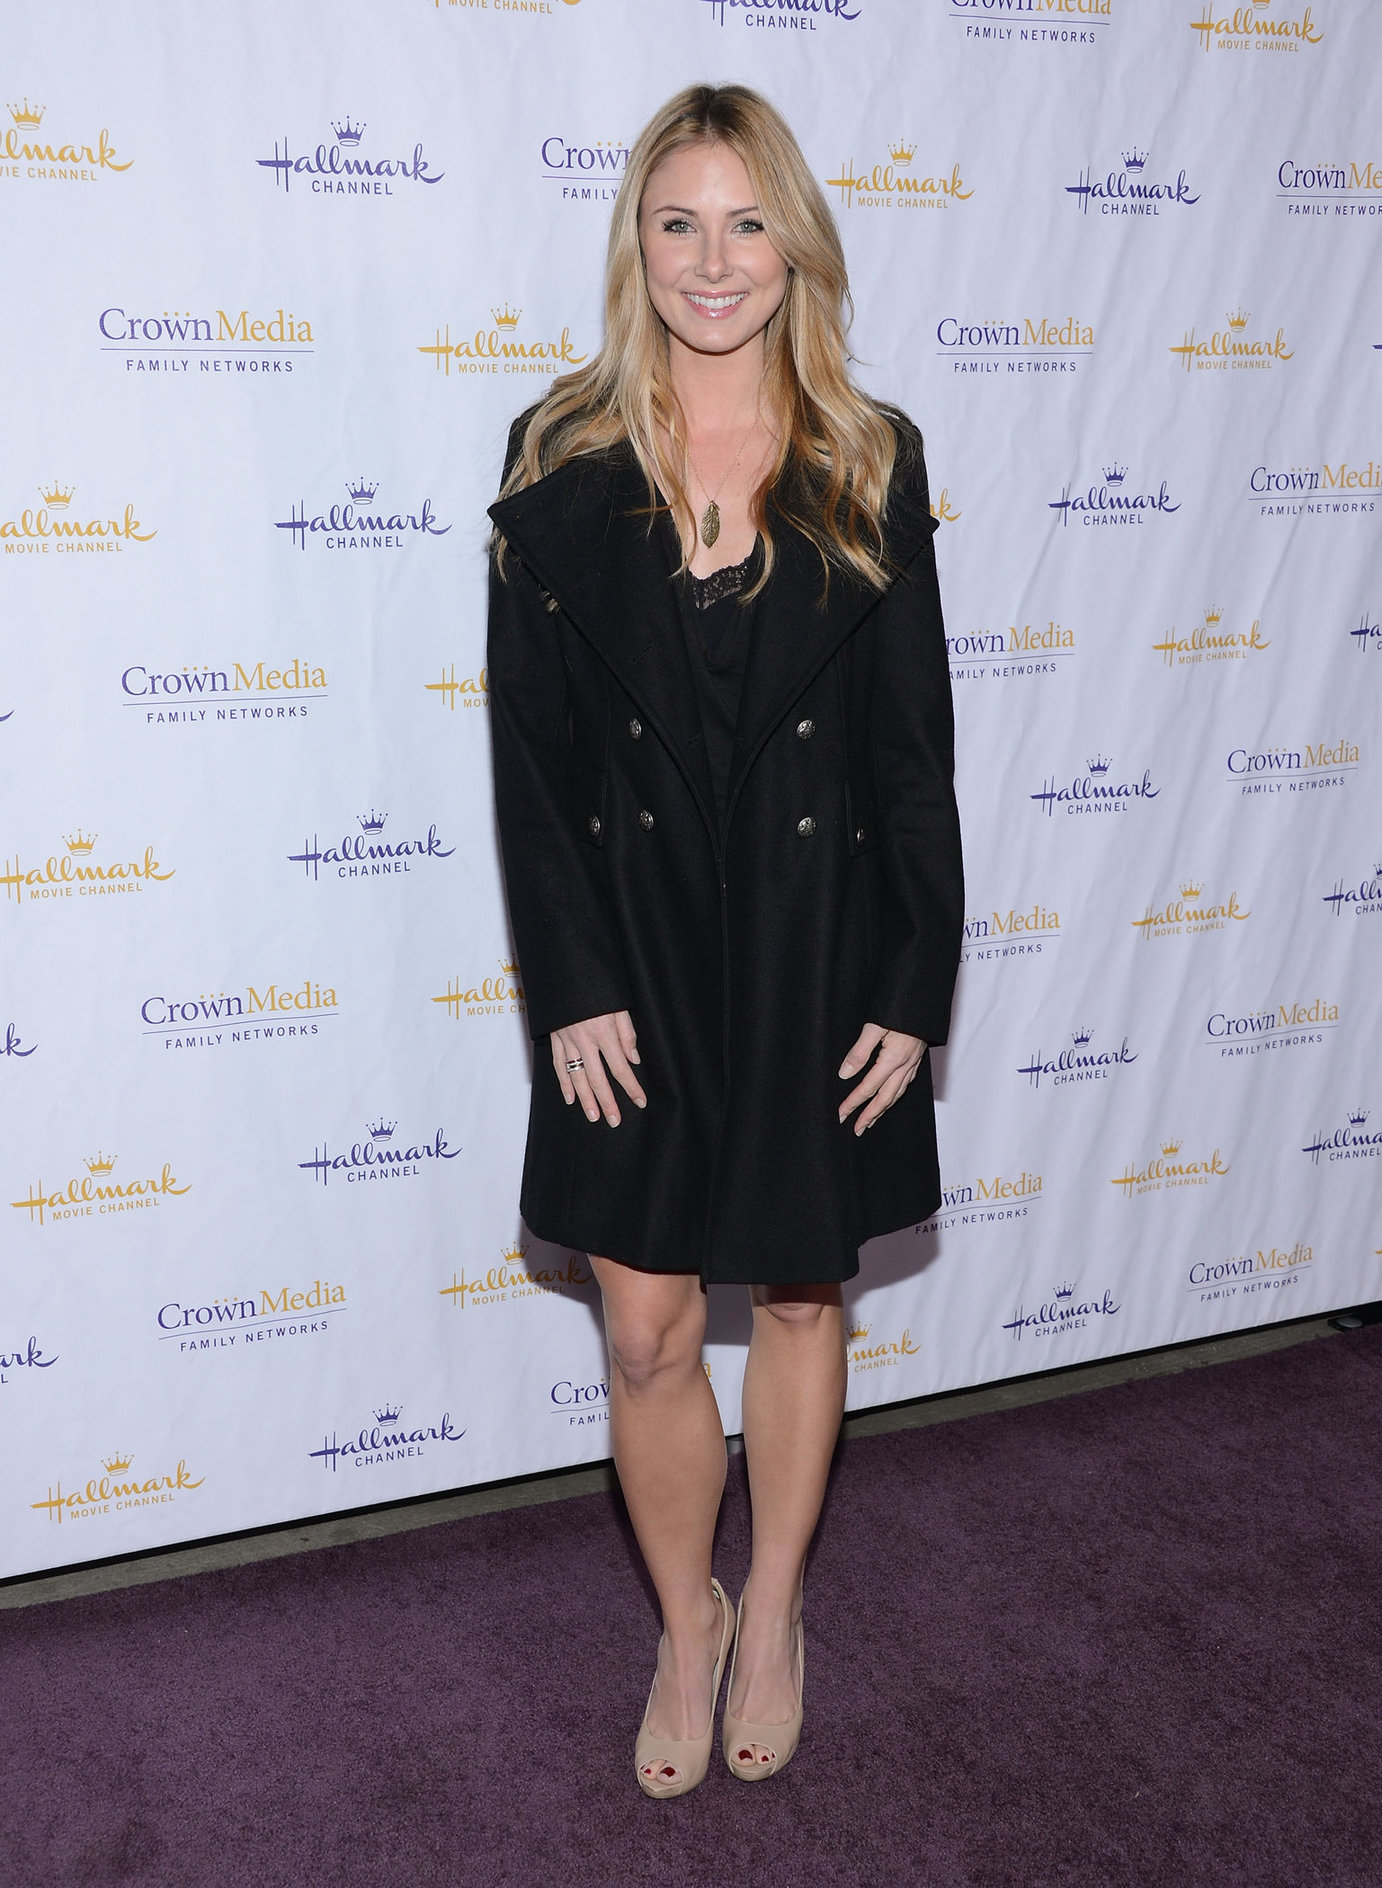 Vanessa Lee Evigan 2013 TCA Winter Press Tour - Hallmark Channel Gala, Jan 5, 2013